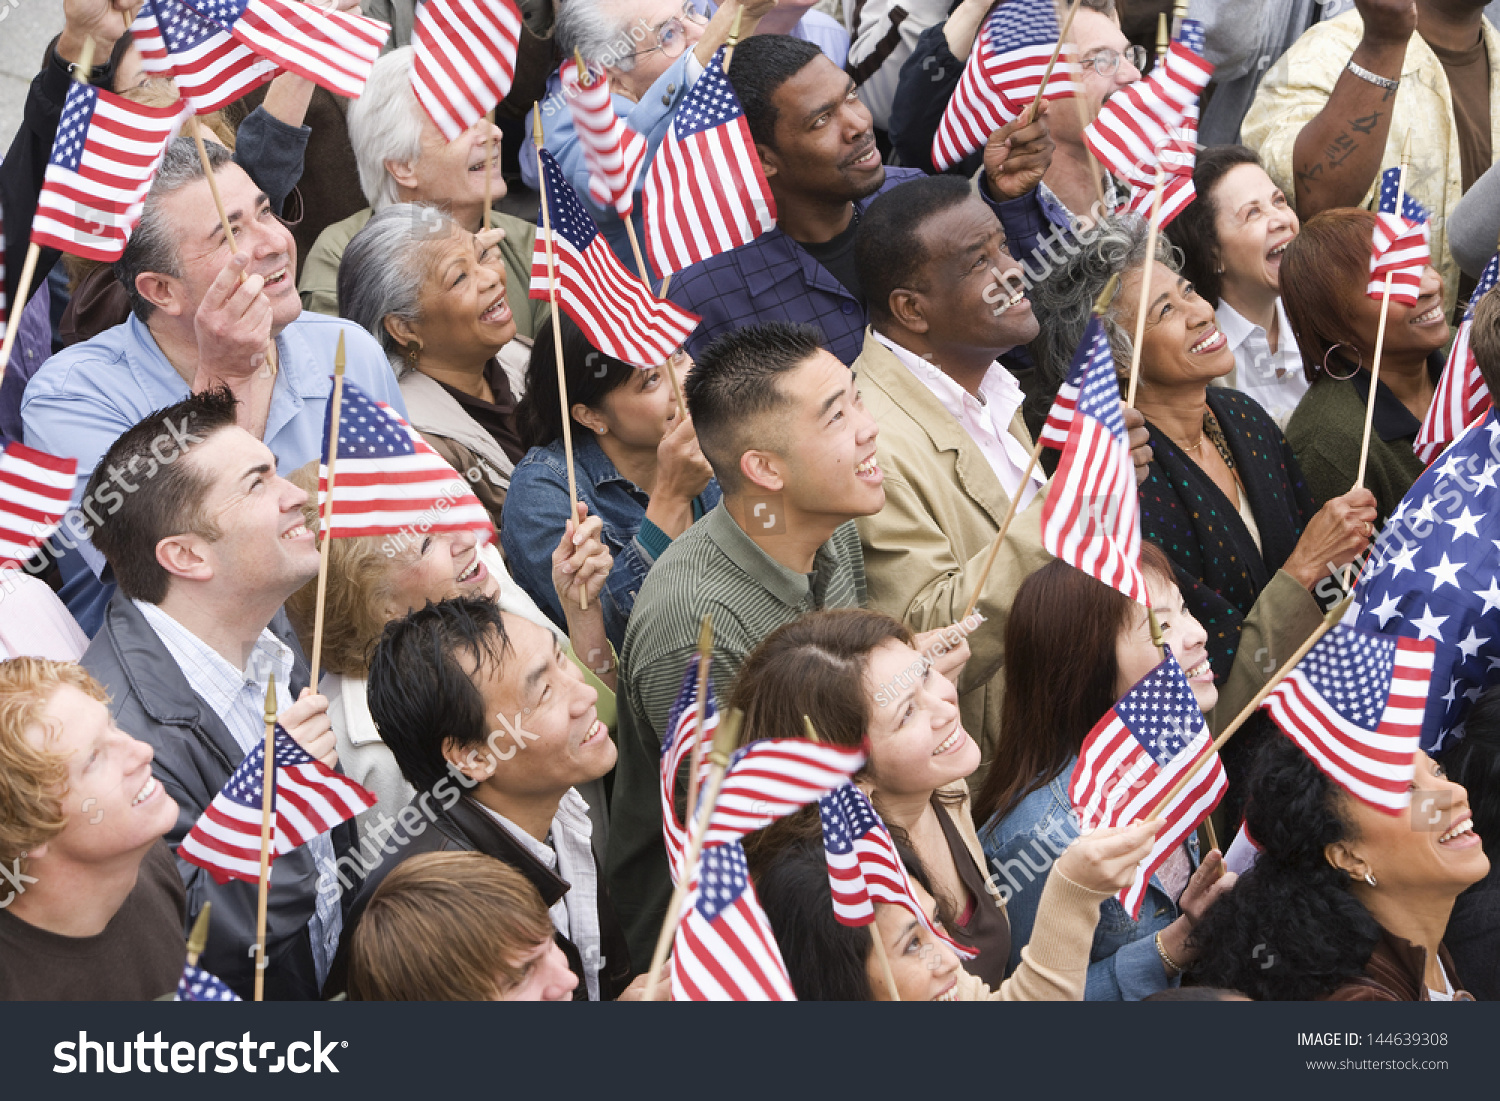 flag american holding happy ethnic multi angle shutterstock